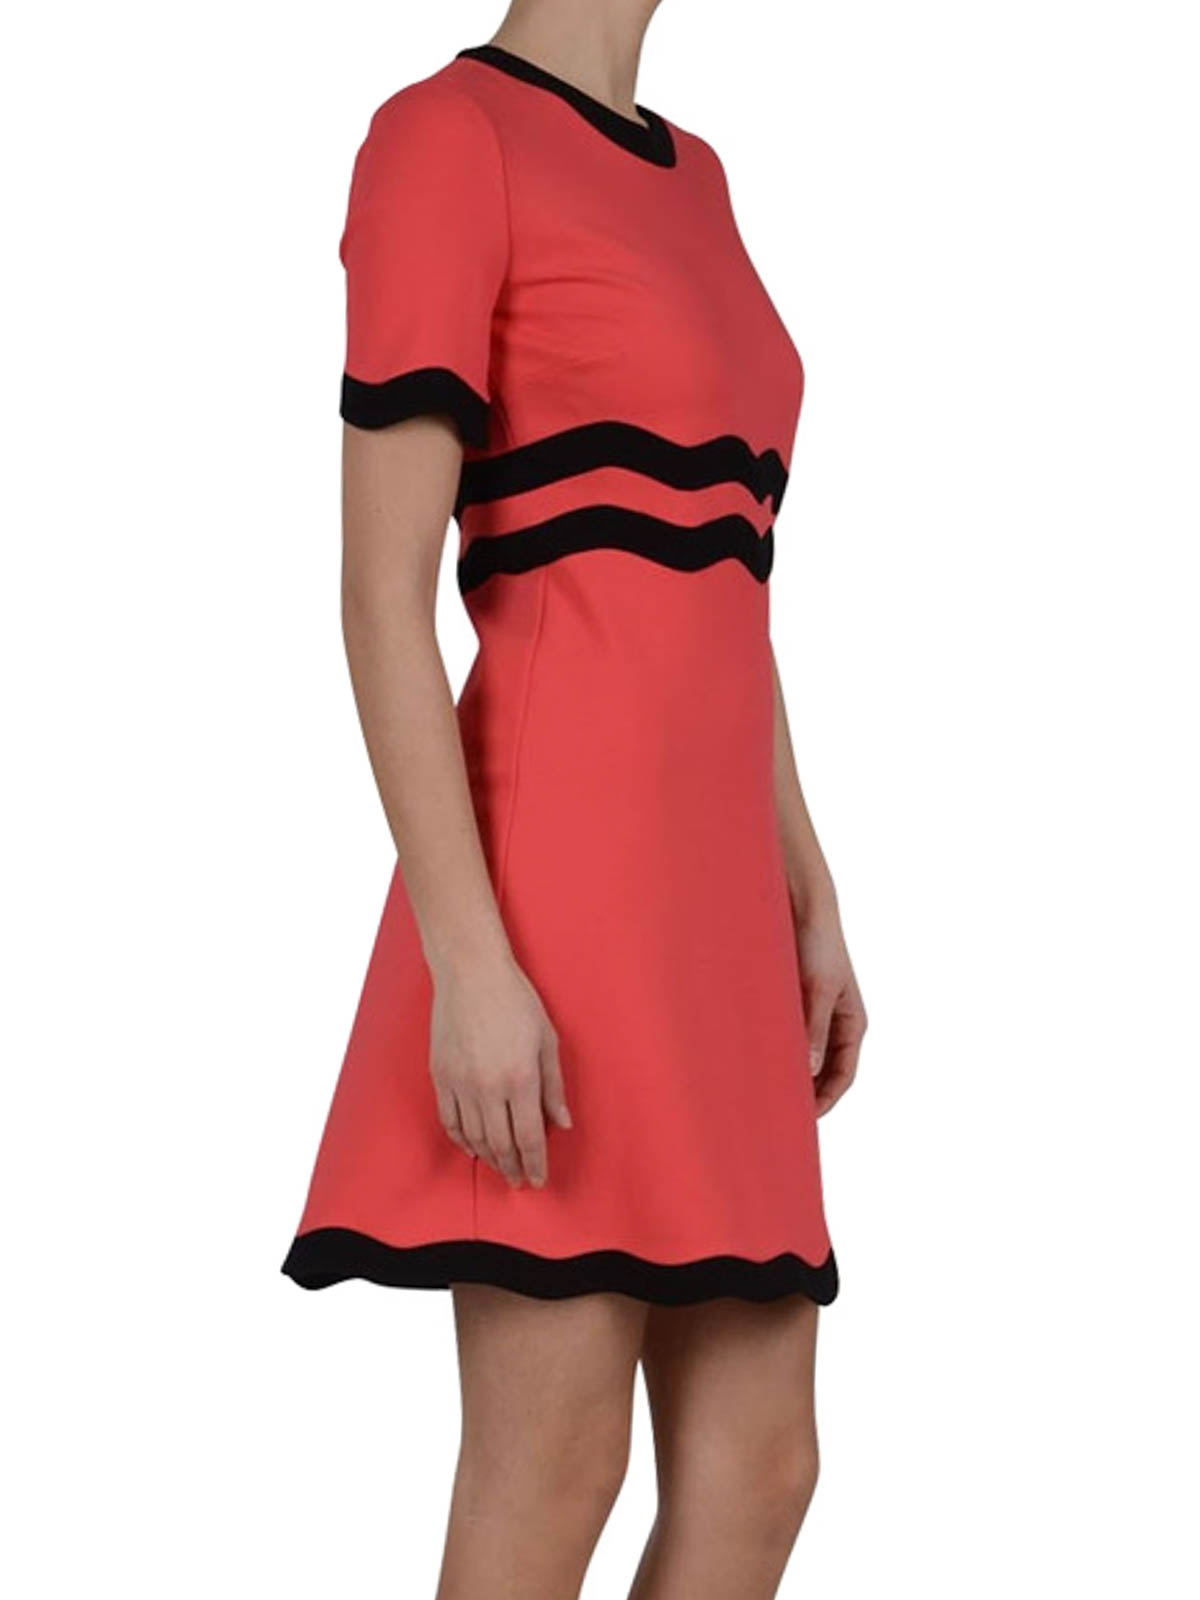 Scalloped edges jersey DRESSES von Gucci - Cocktailkleider | iKRIX